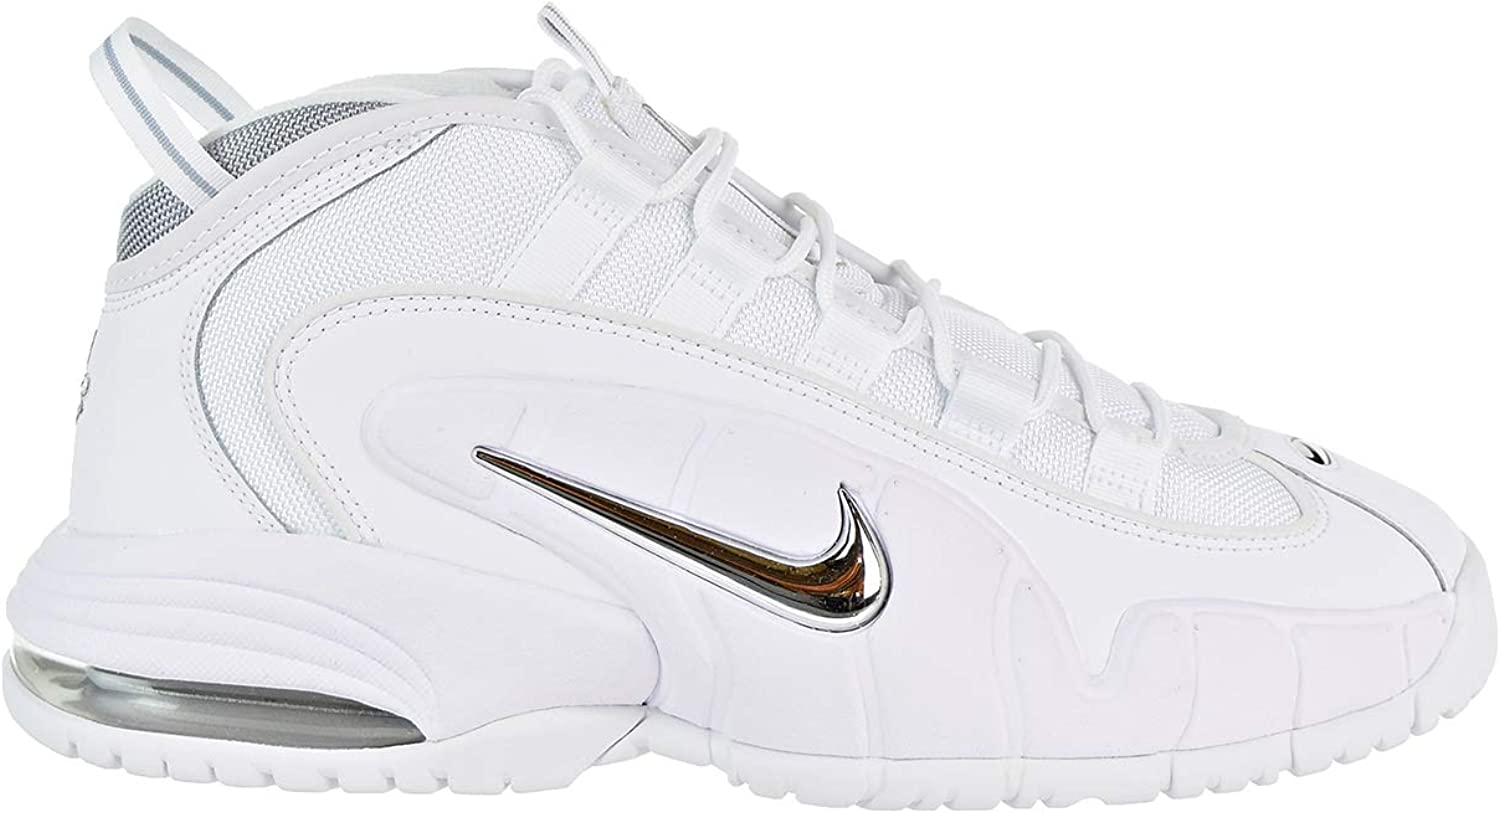 Nike Air Max Penny Men's Shoes WhiteMetallic Silver 685153 100